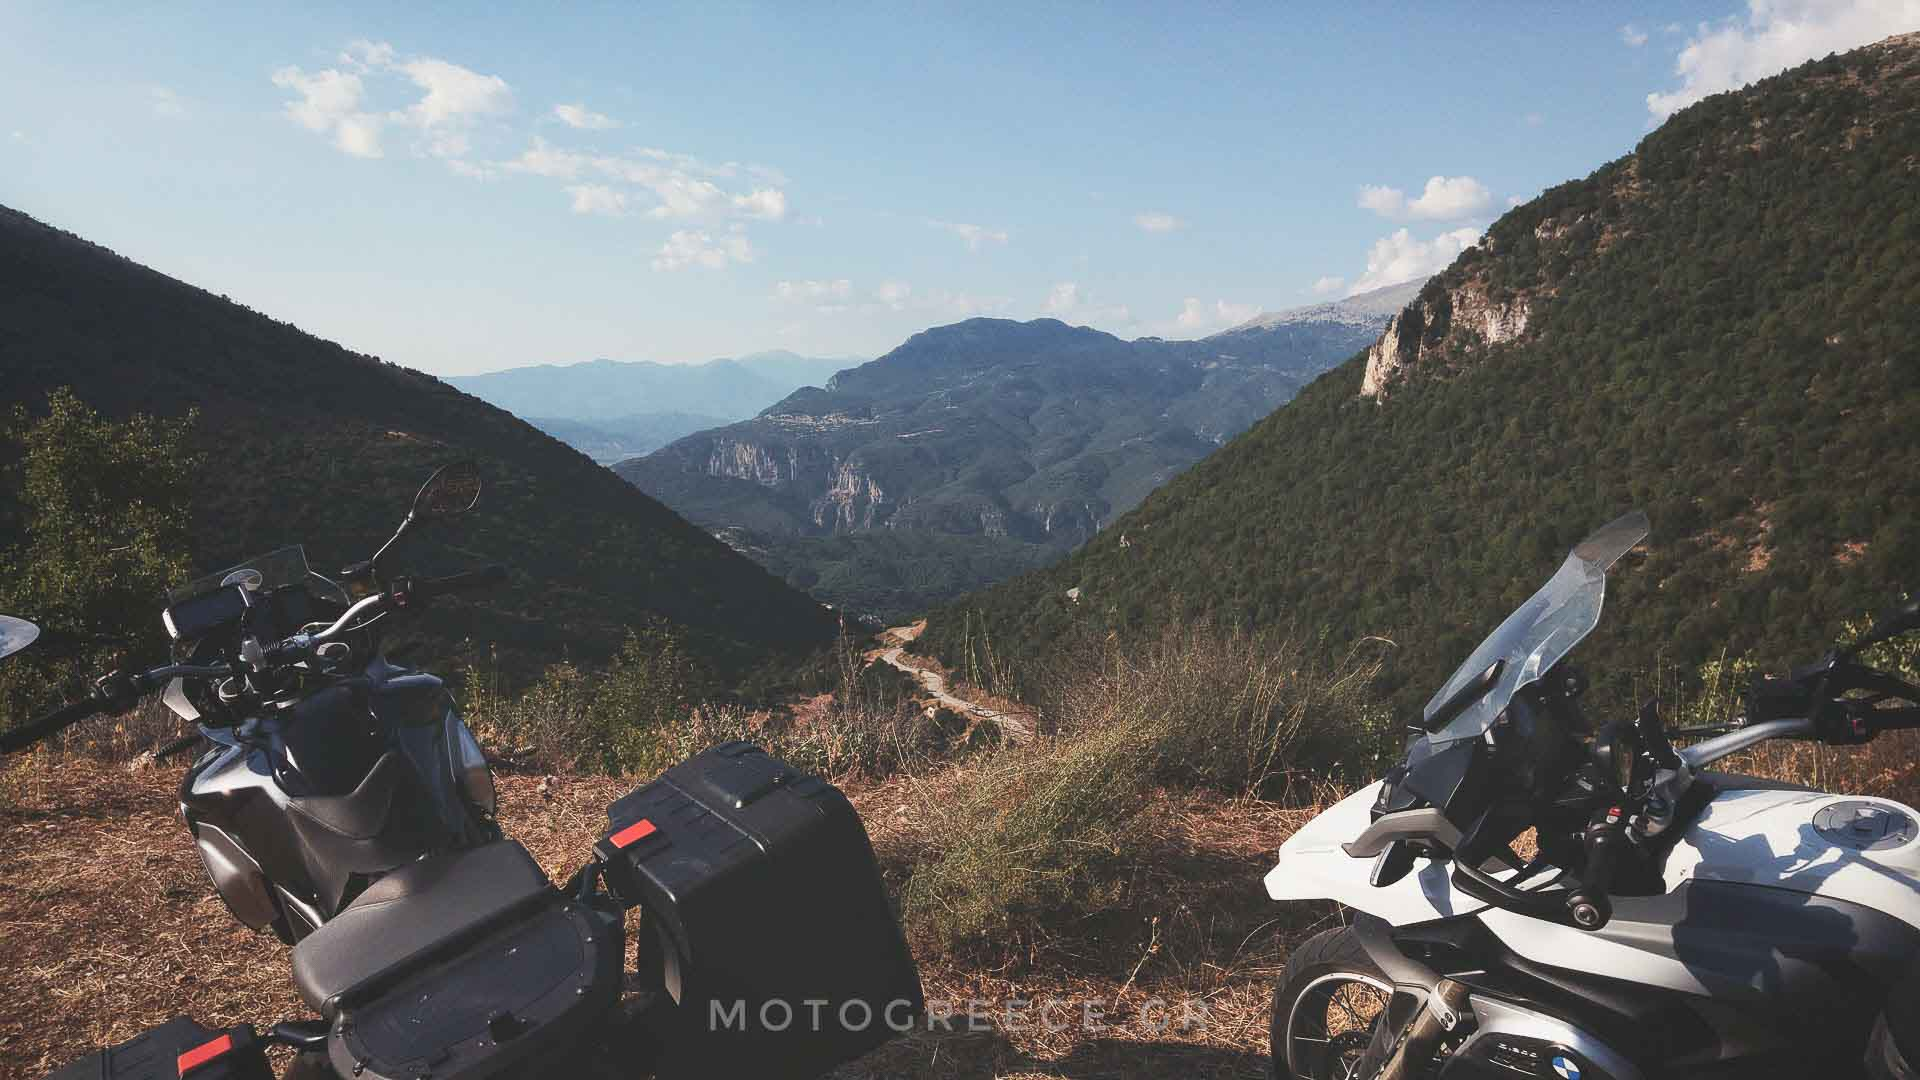 Motorcycle Tour of East Balkans